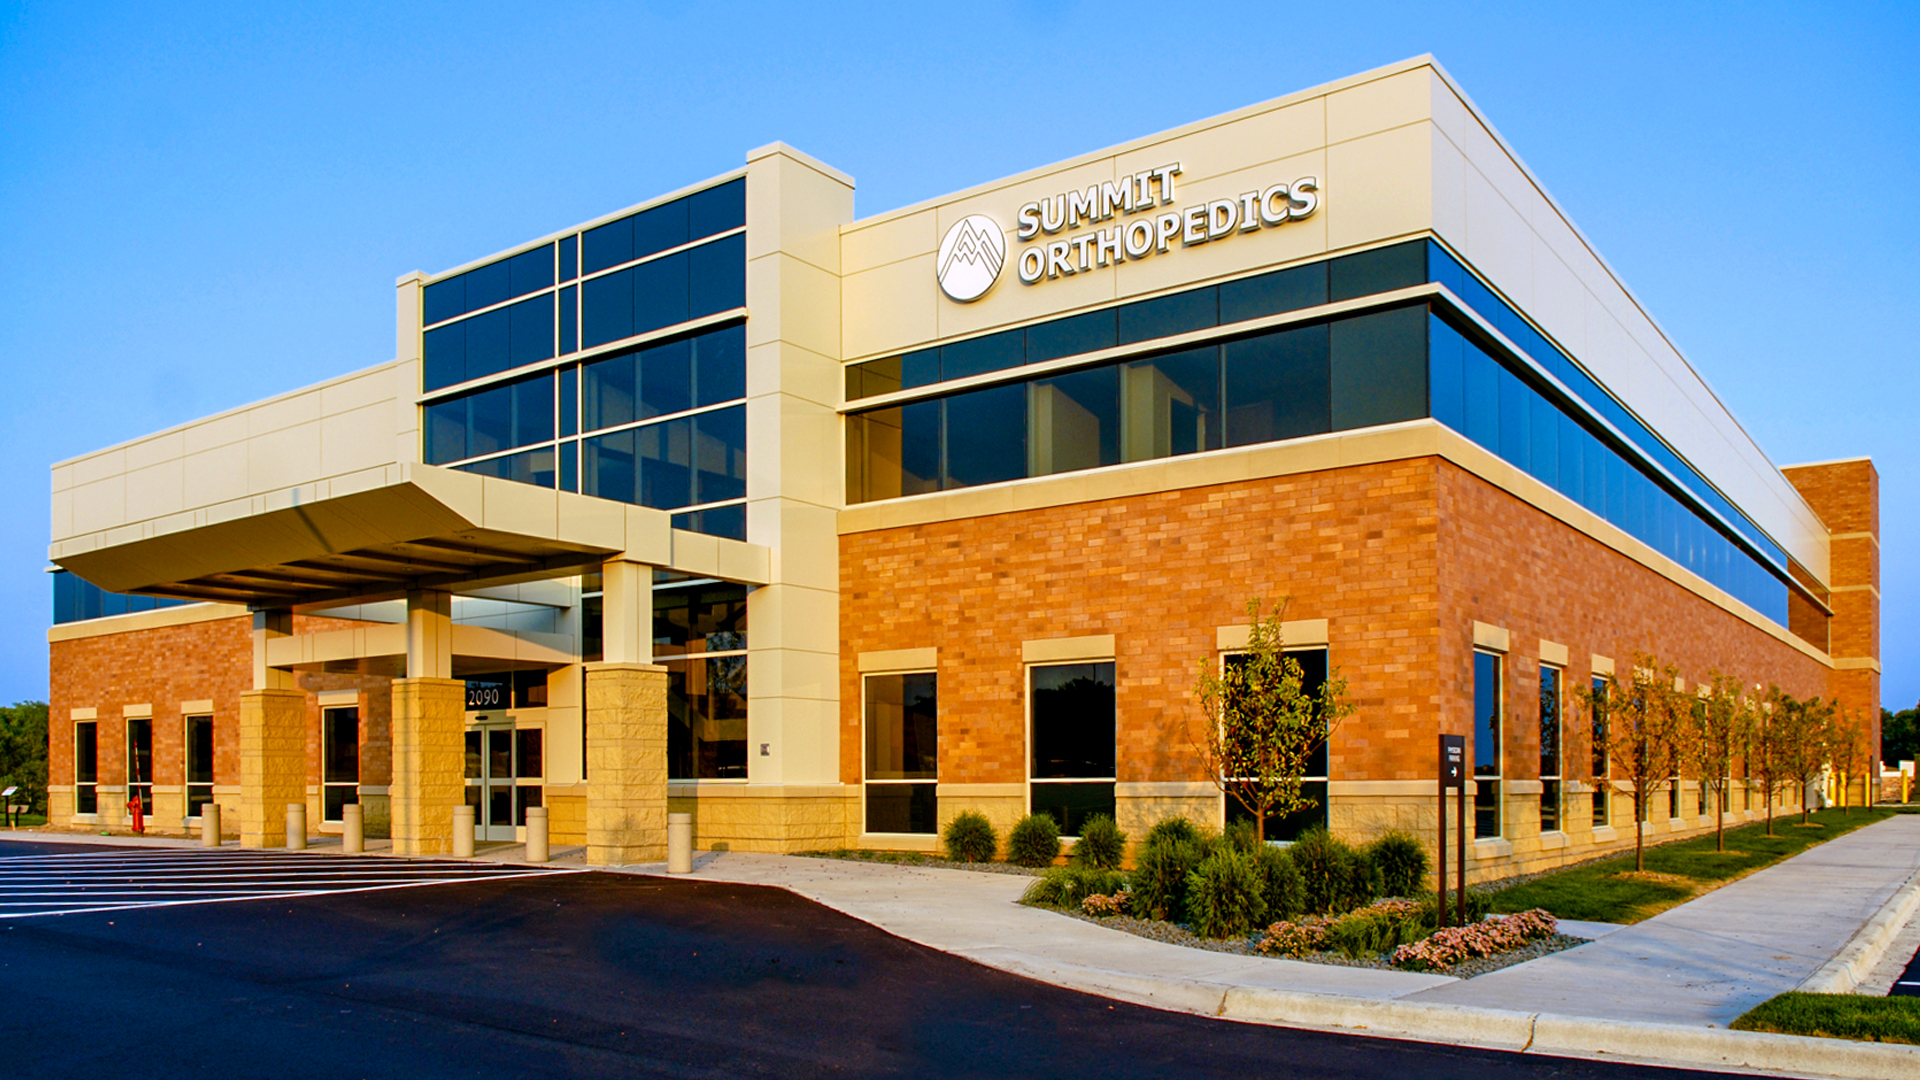 Woodlake Medical Center Woodbury MN Healthcare Summit Orthopedics Front Entrance View